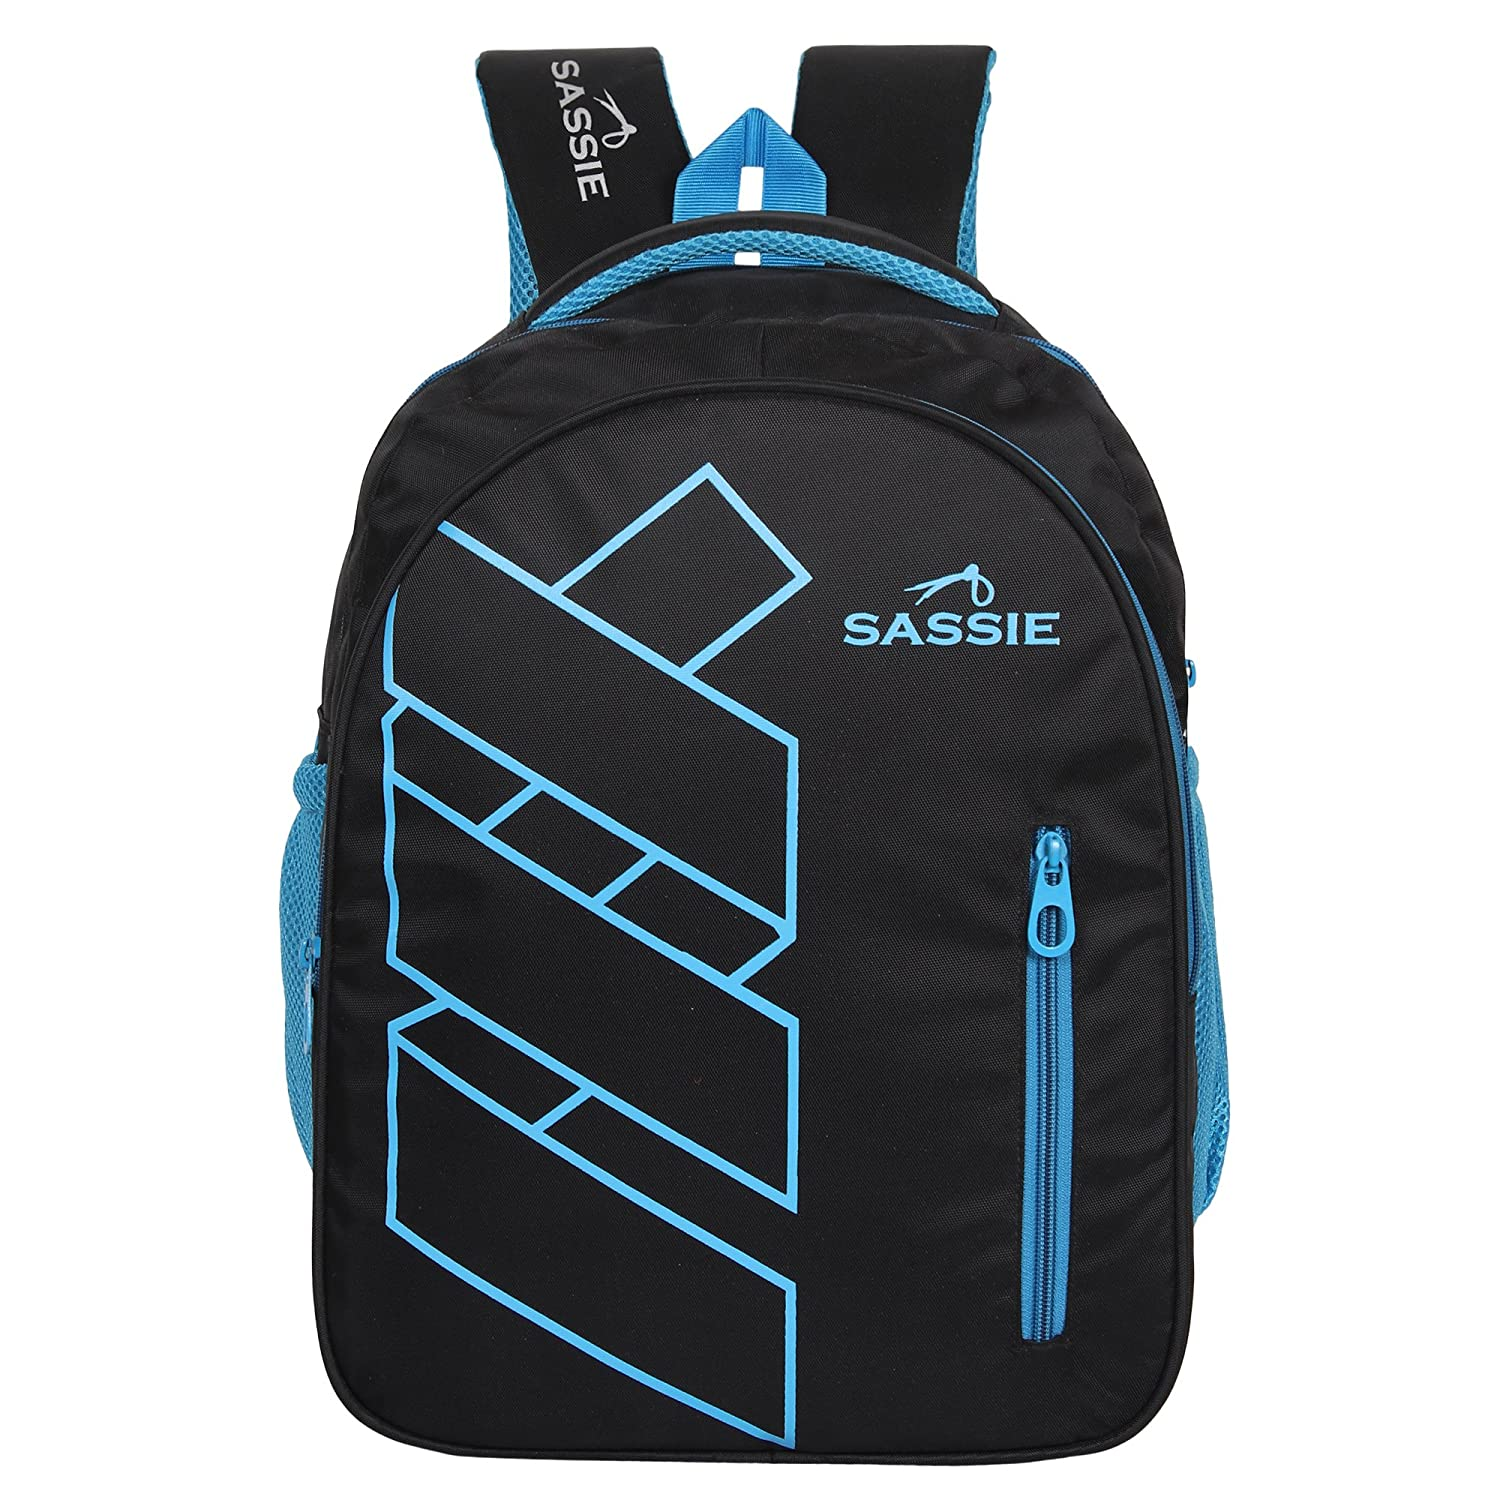 Sassie Polyester 41 L Black Blue School And Laptop Bag With